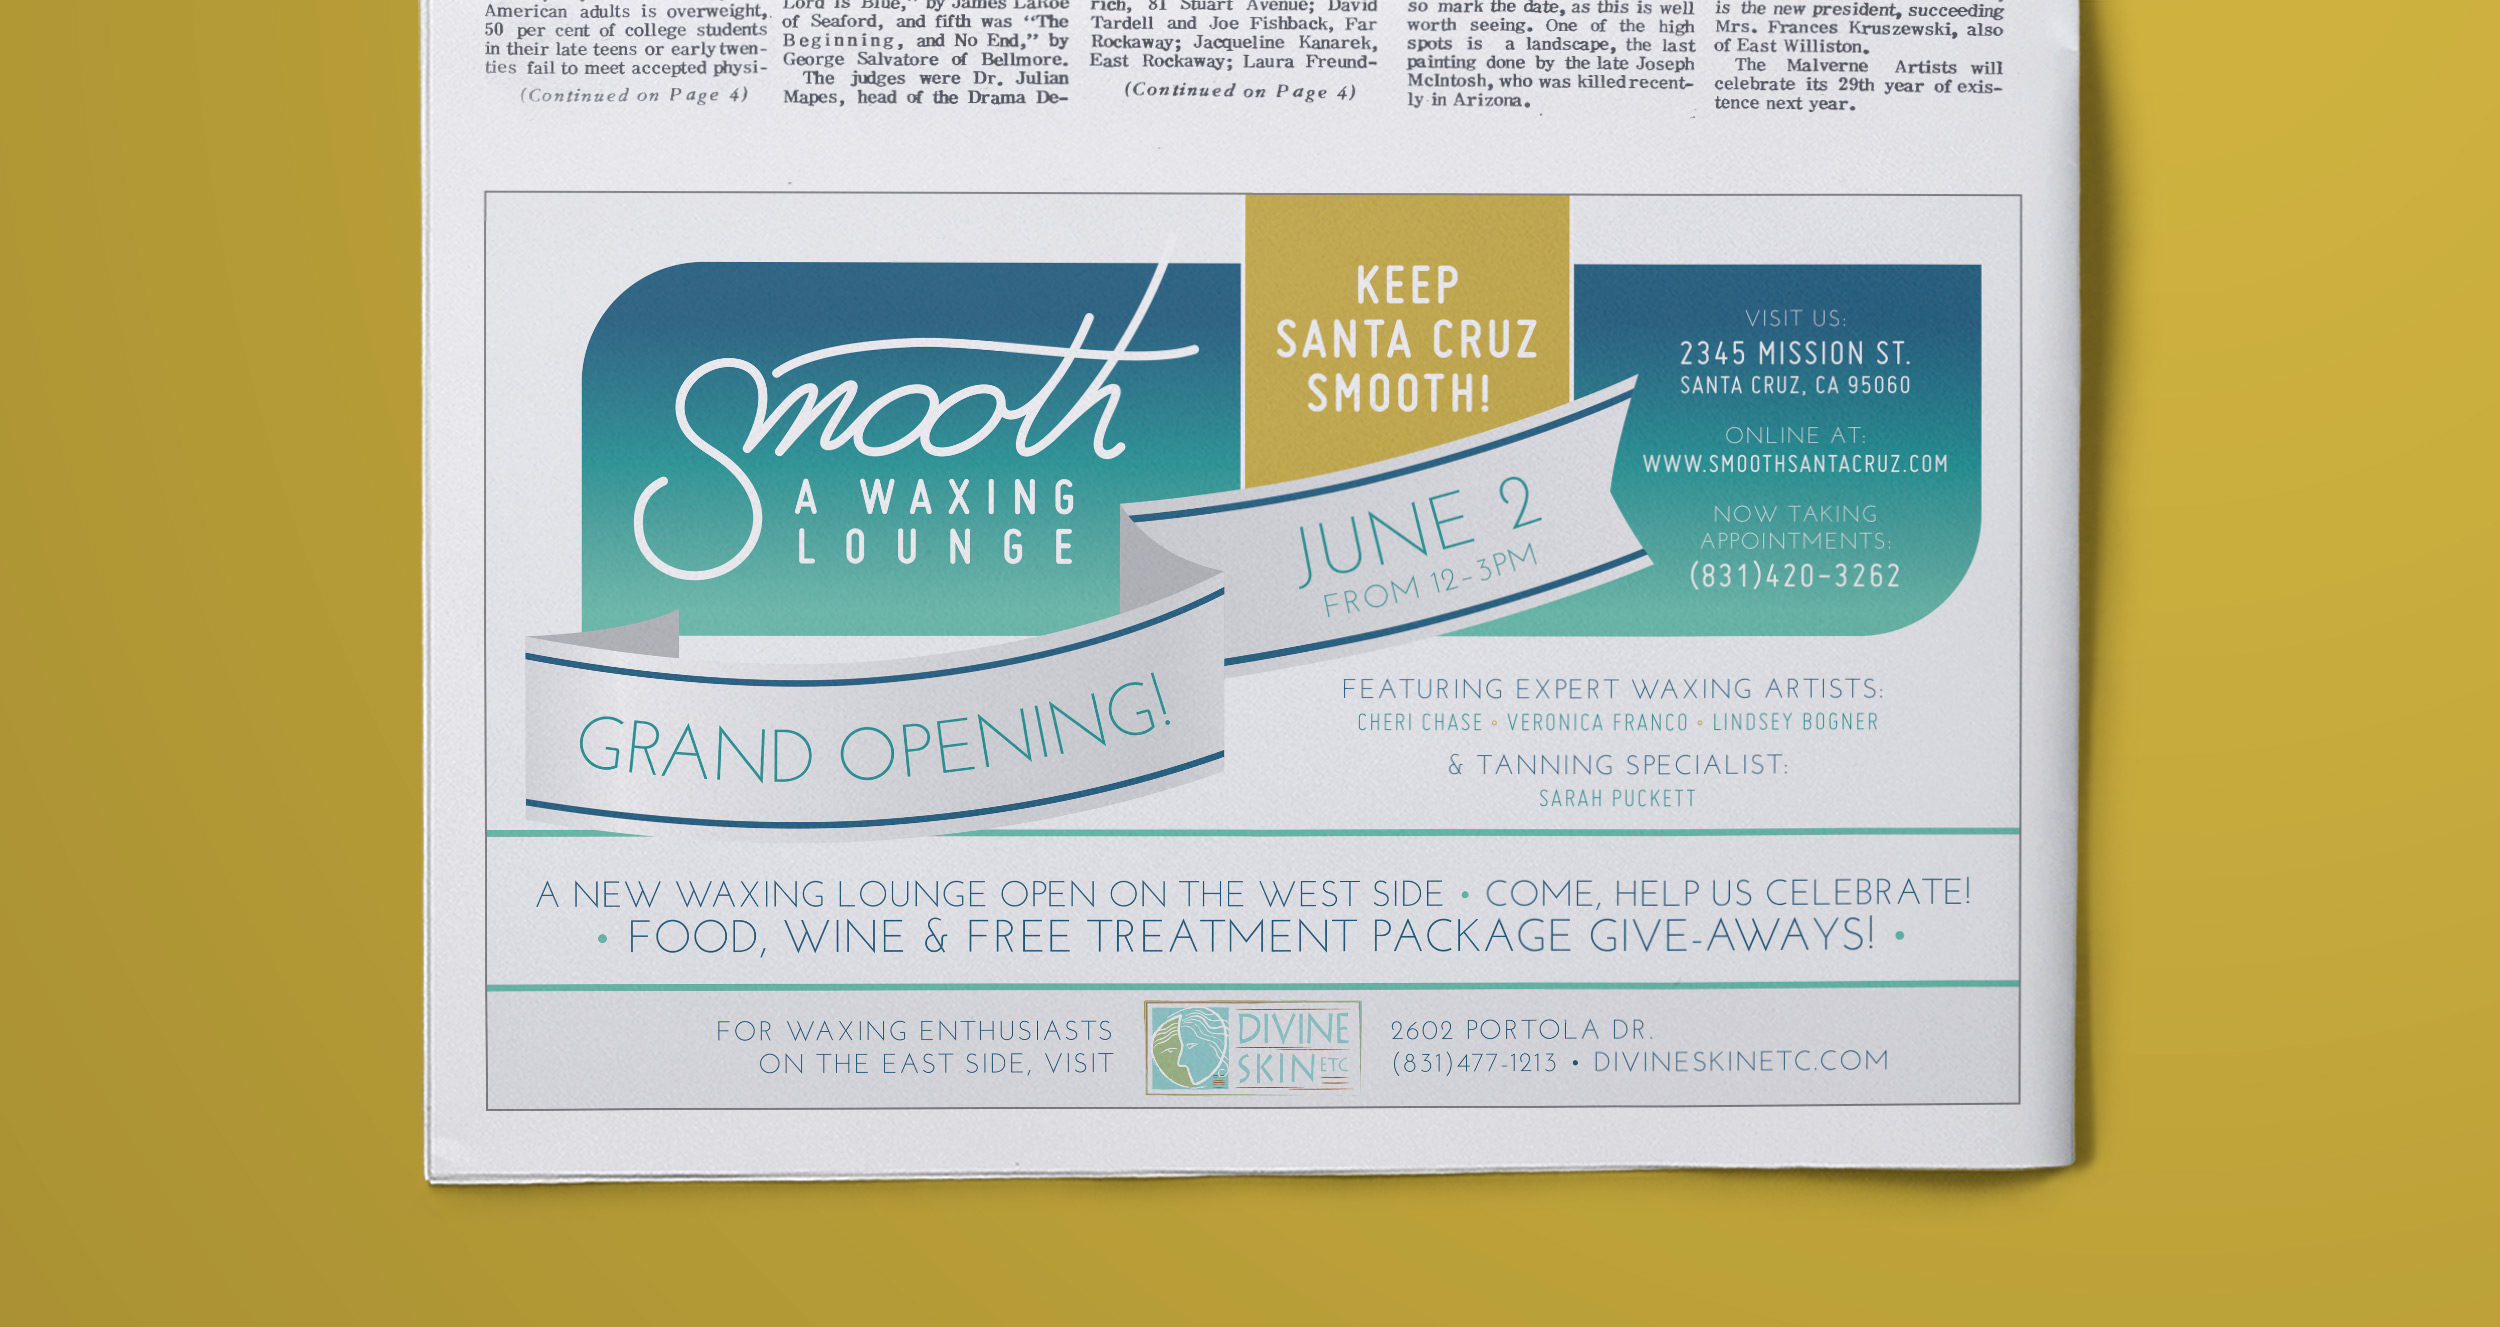 Smooth - grand opening ad